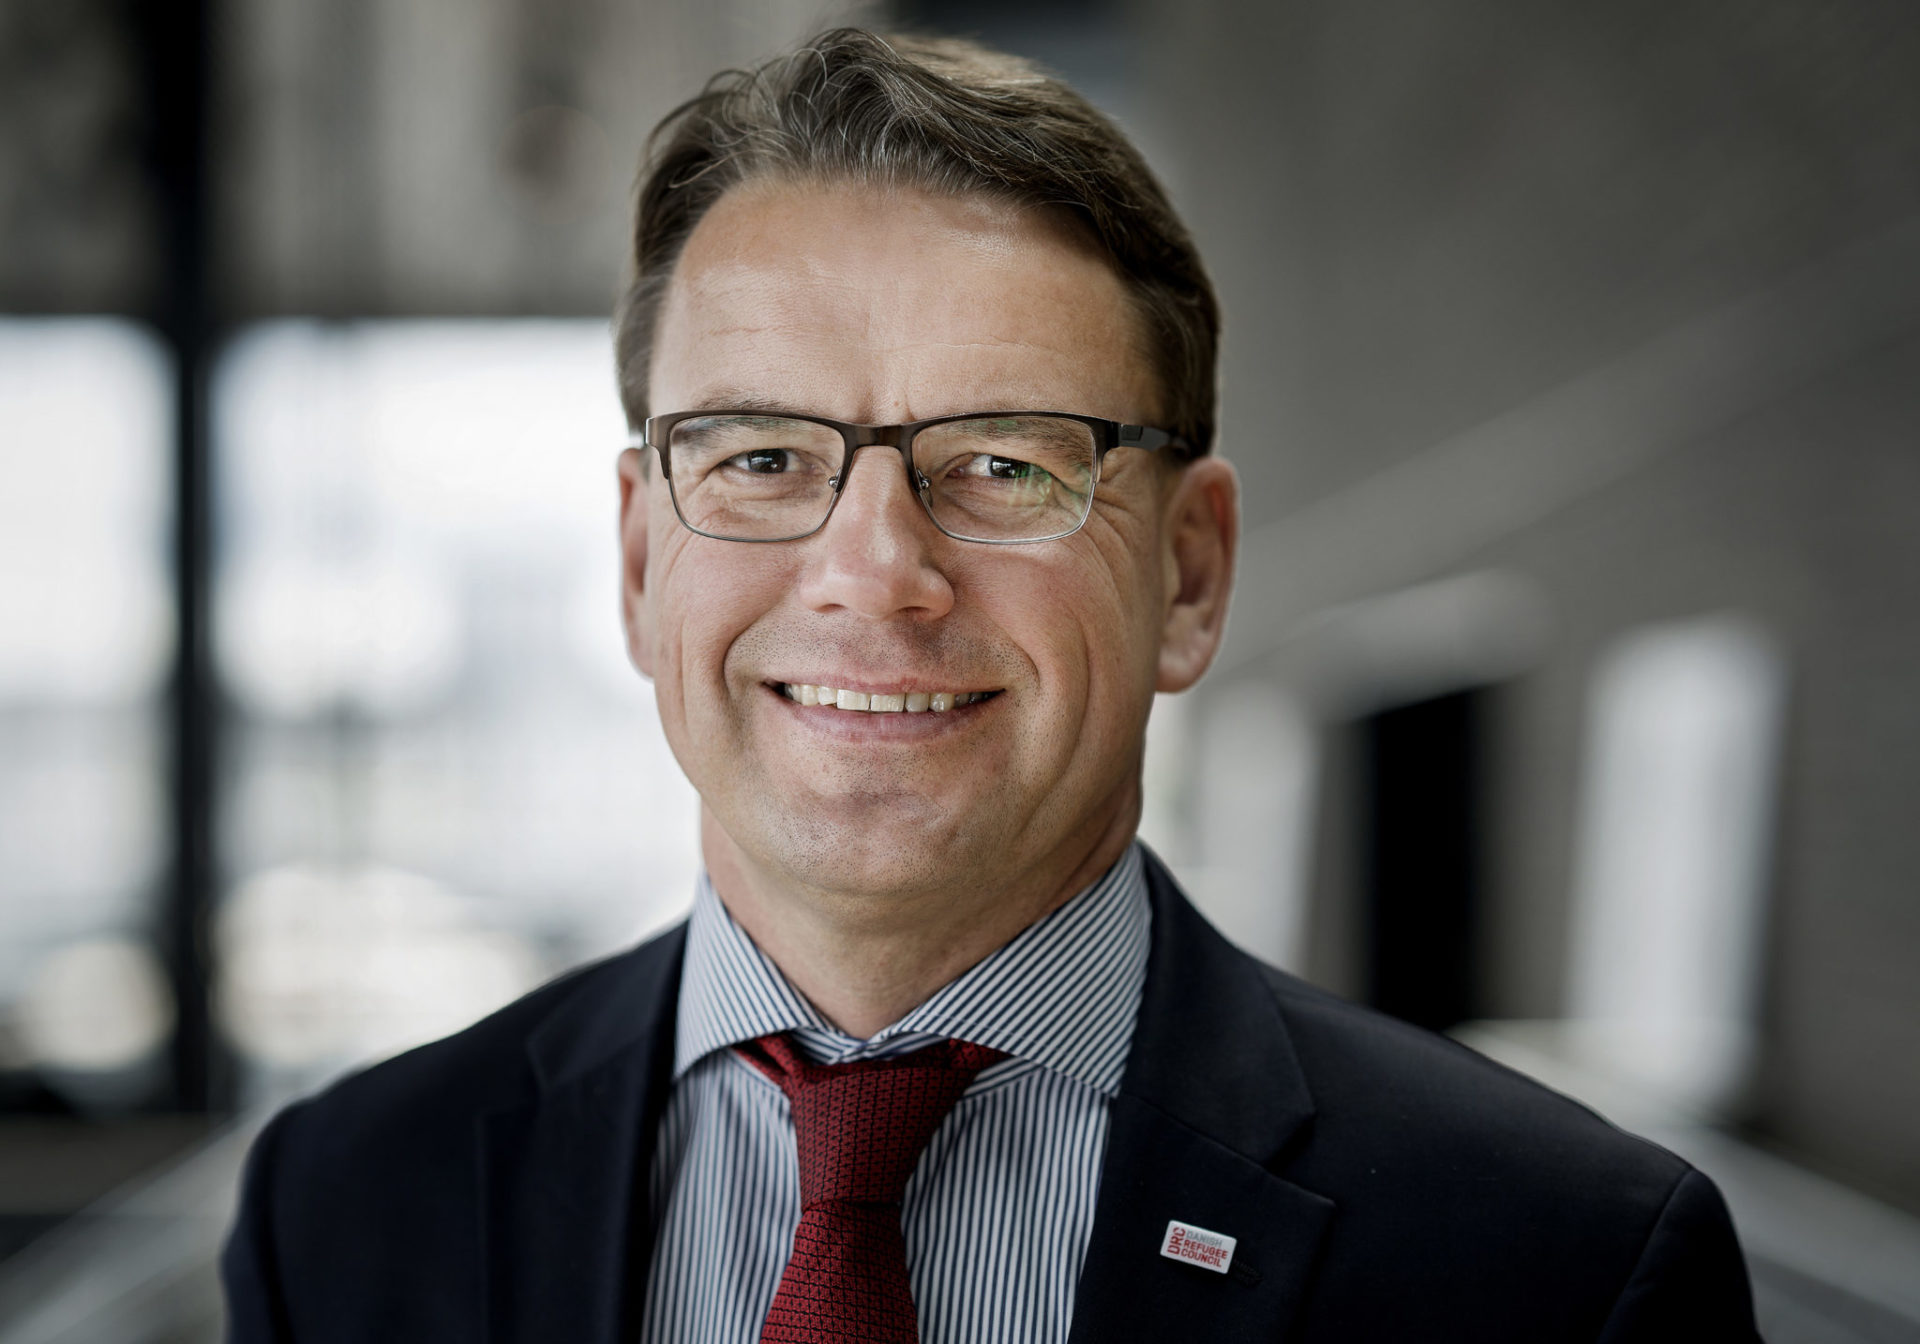 """We took a big leap forward to integrate digitalization: it will save lives and make a difference to people in need,"" says Christian Friis Bach, DRC's top executive."